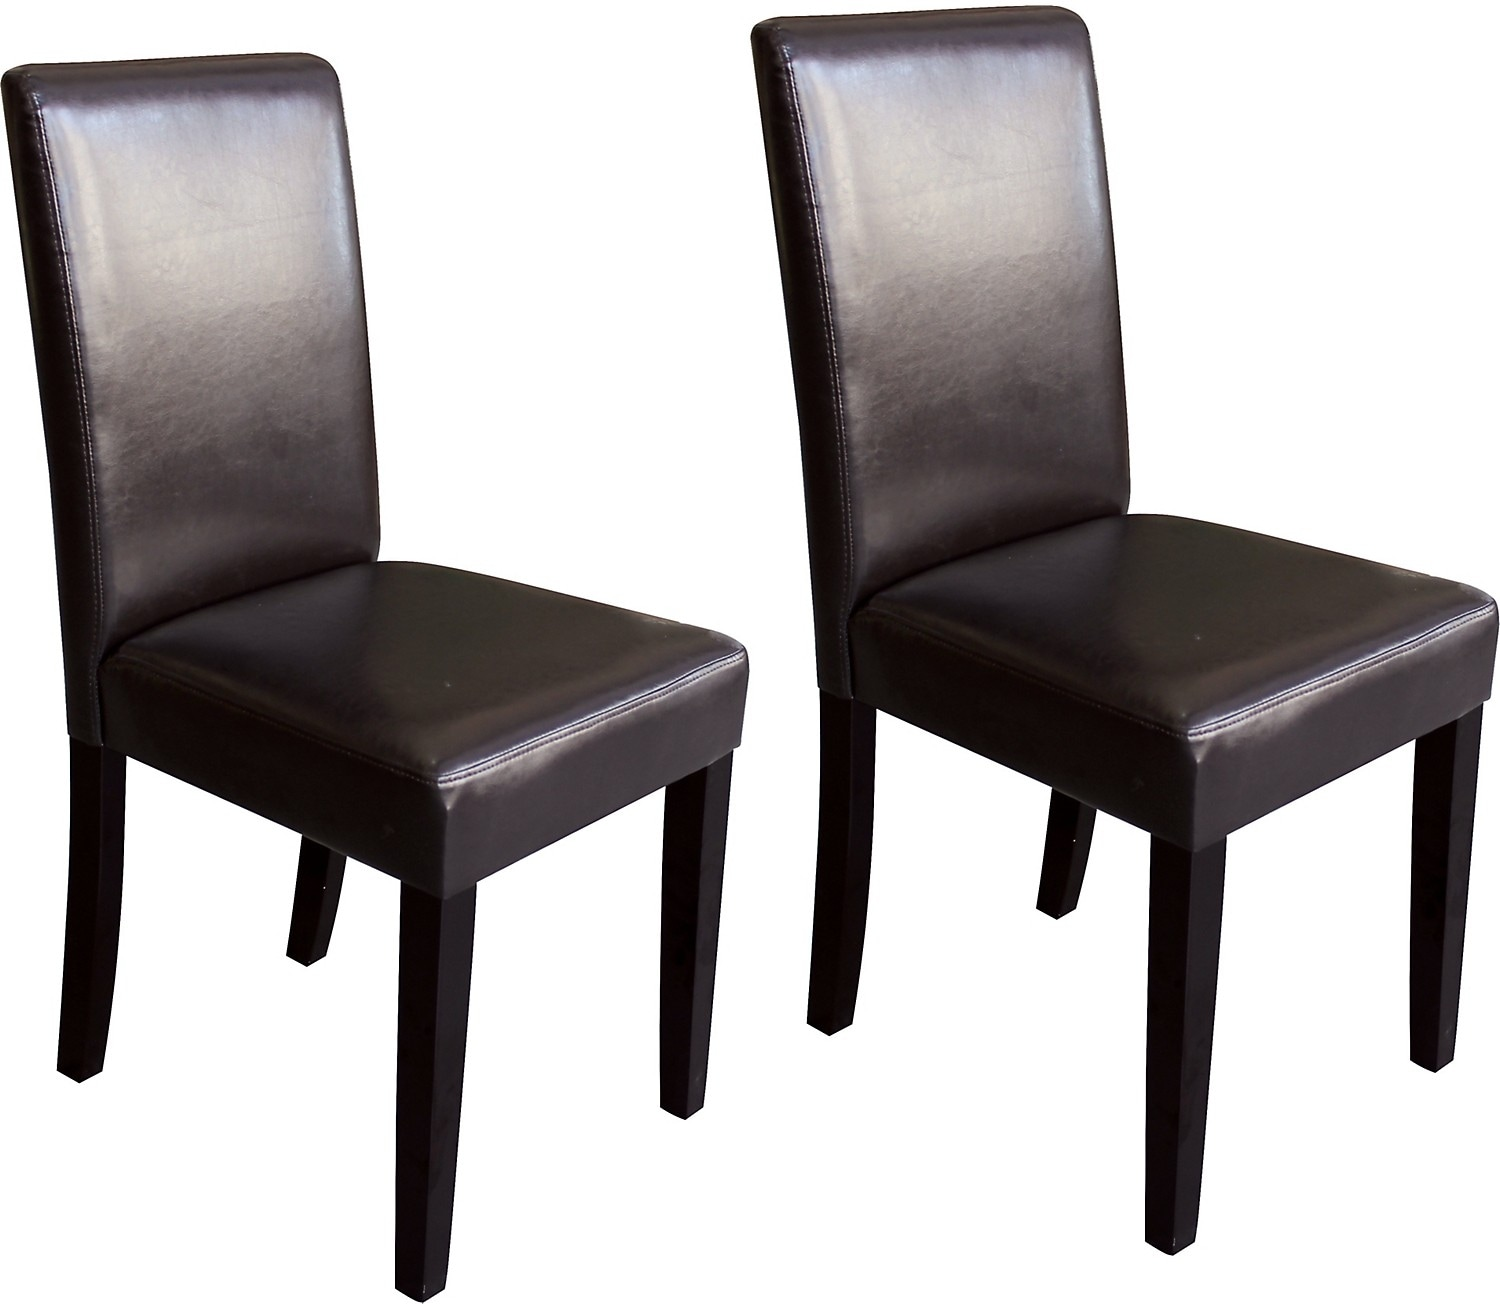 Brown 2 Piece Accent Dining Chair Set